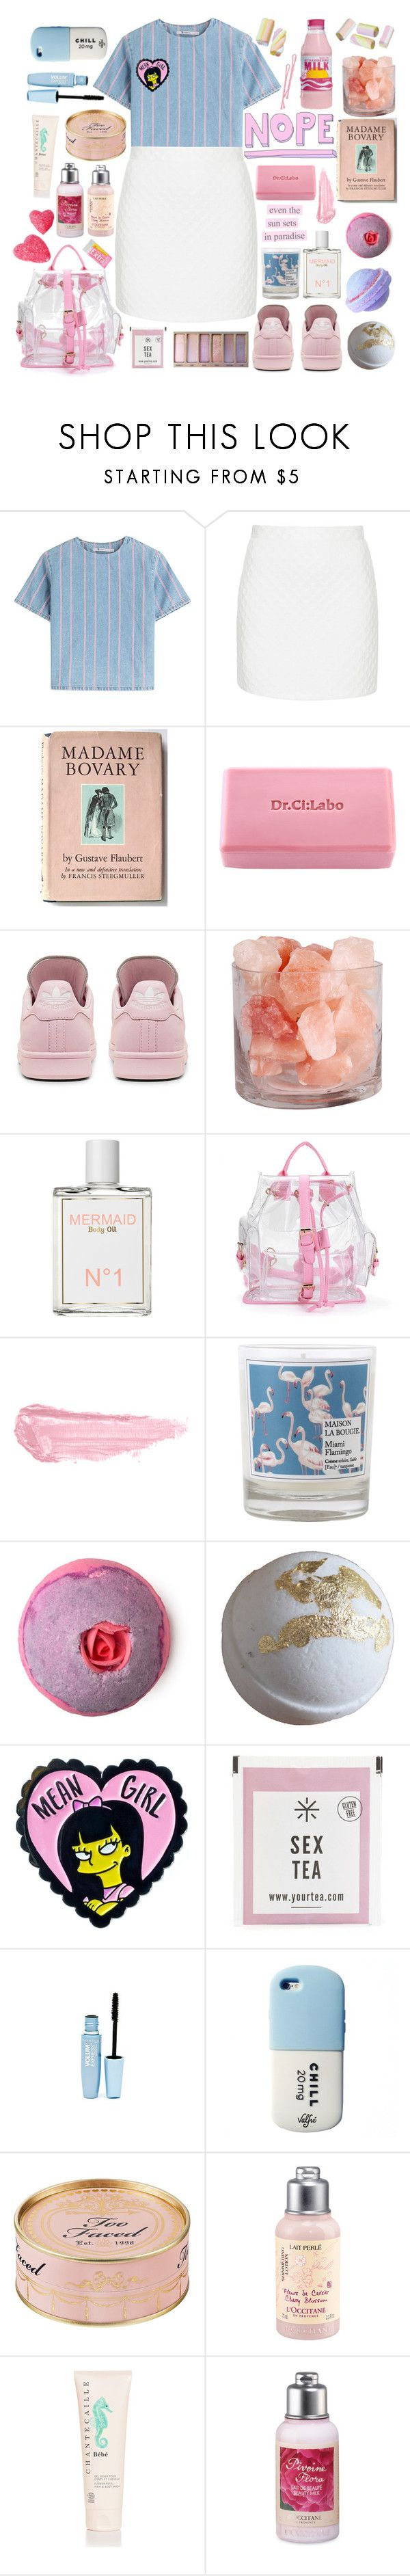 """Bitter sweet candy on the tongue after the kiss"" by anna-modestovna ❤ liked on Polyvore featuring T By Alexander Wang, Topshop, Dr.Ci:Labo, adidas, Mermaid, By Terry, Maison La Bougie, BOBBY, Justin Bieber and Maybelline"